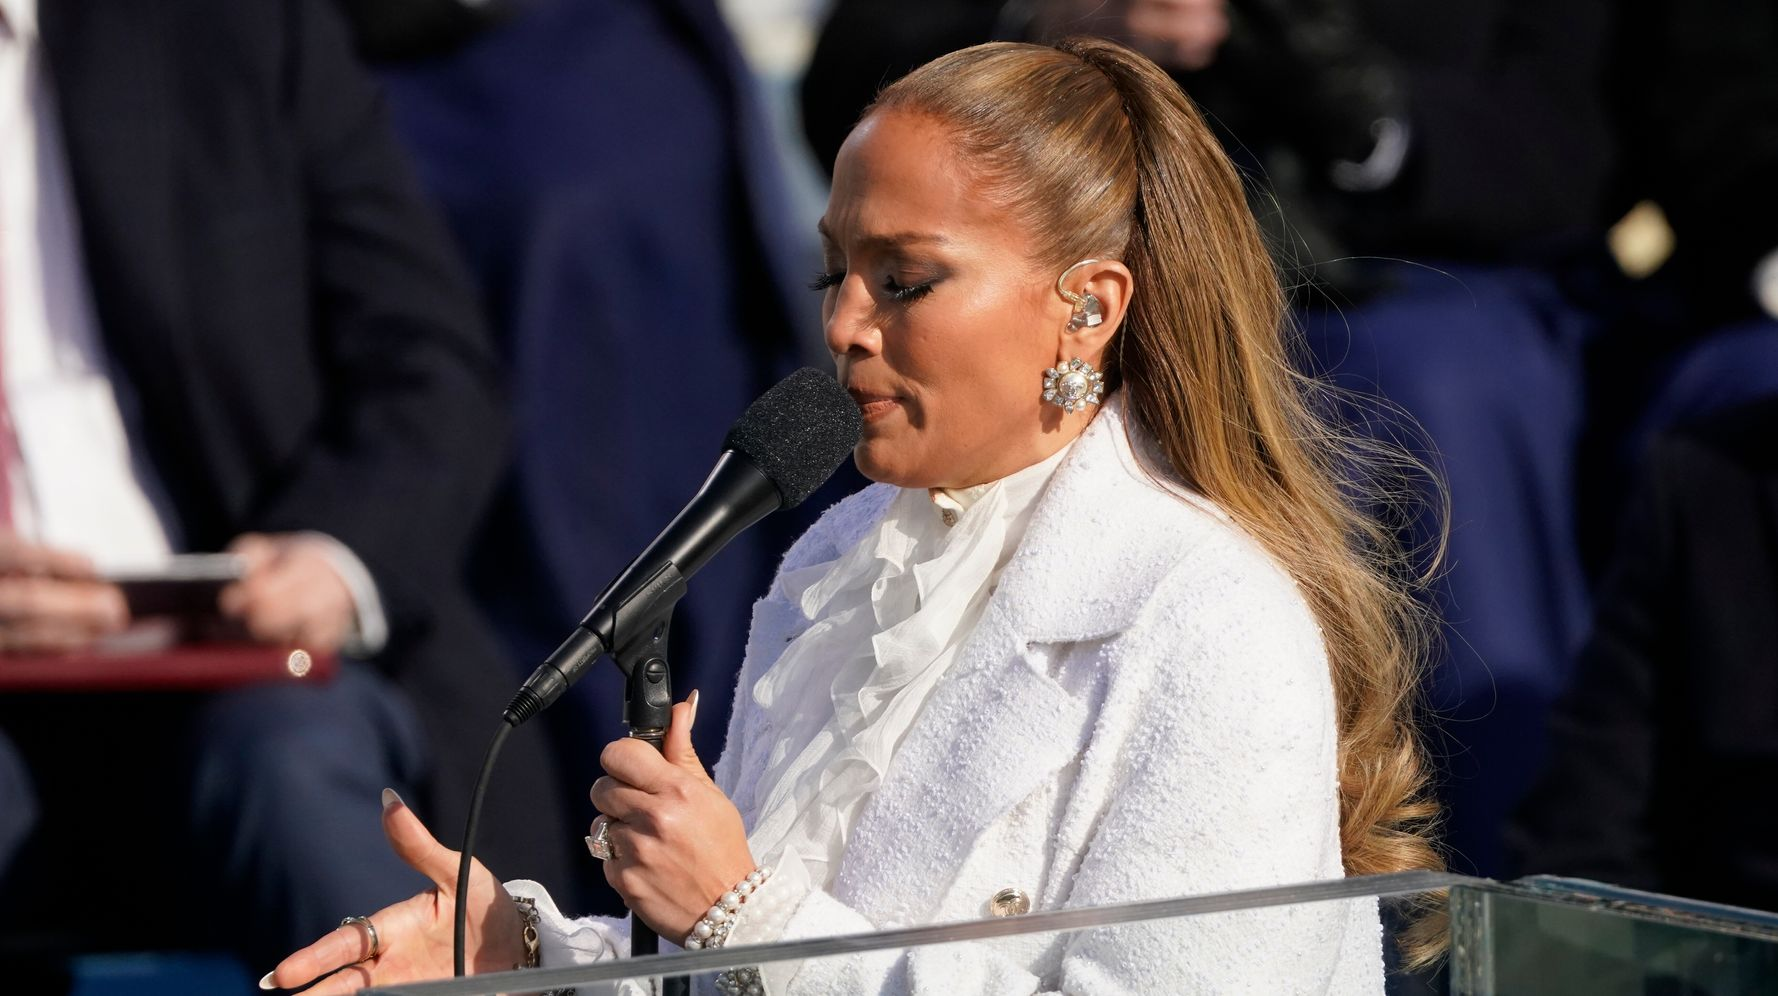 Native Americans Question J. Lo Singing 'This Land Is Your Land' At Inaugural - HuffPost